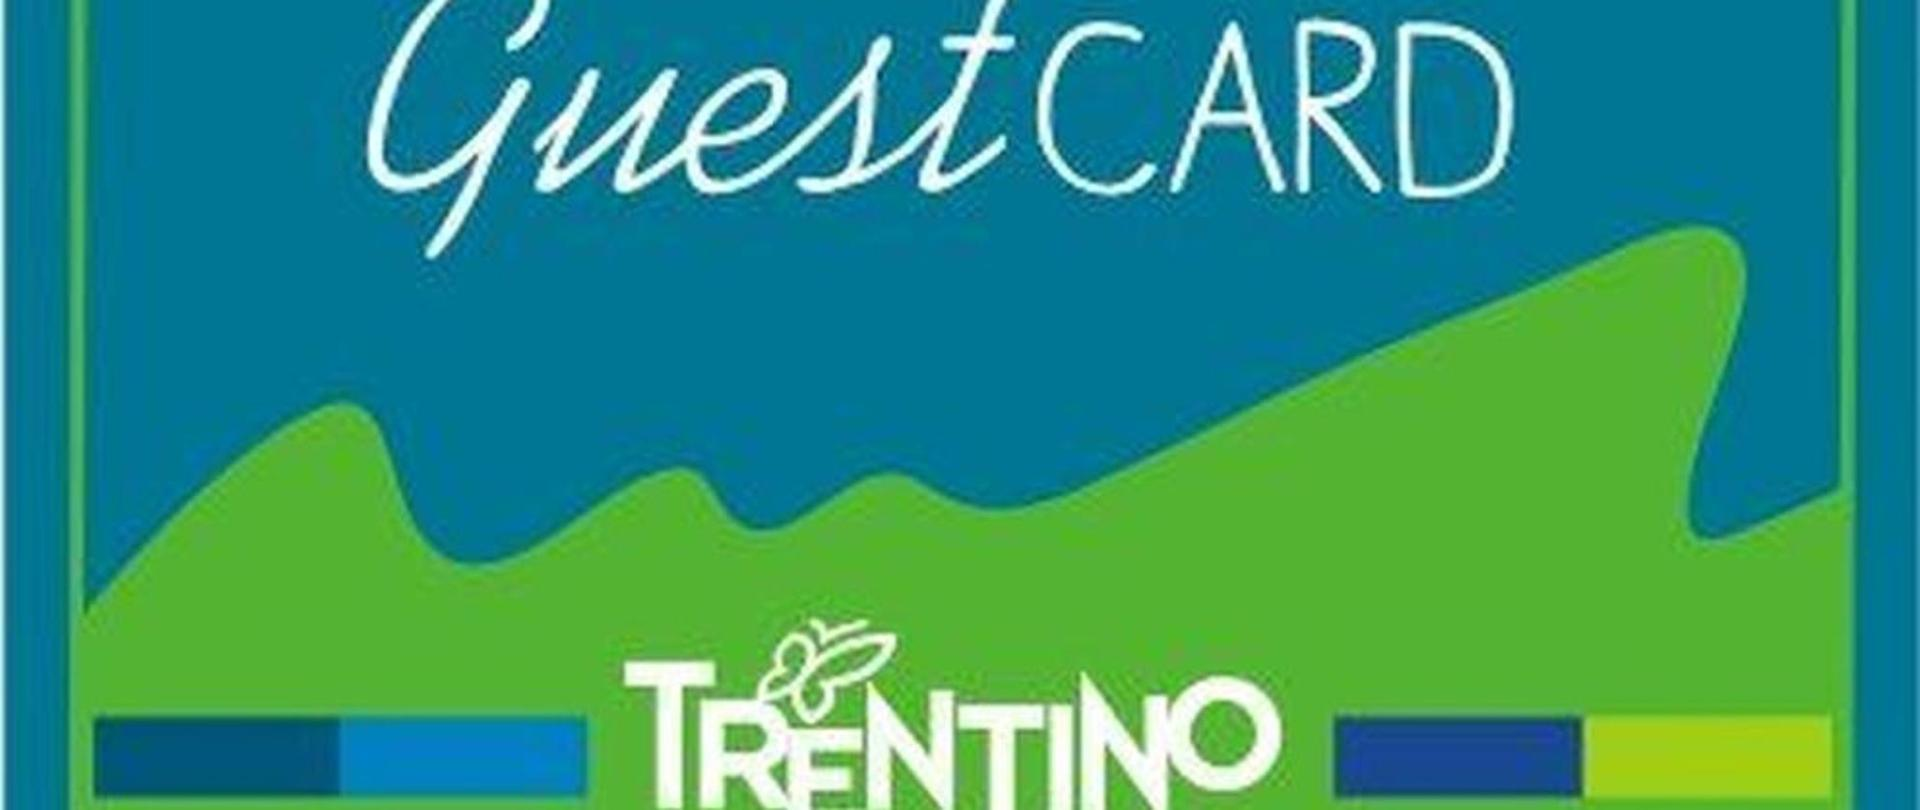 trentino_guest_card.jpg